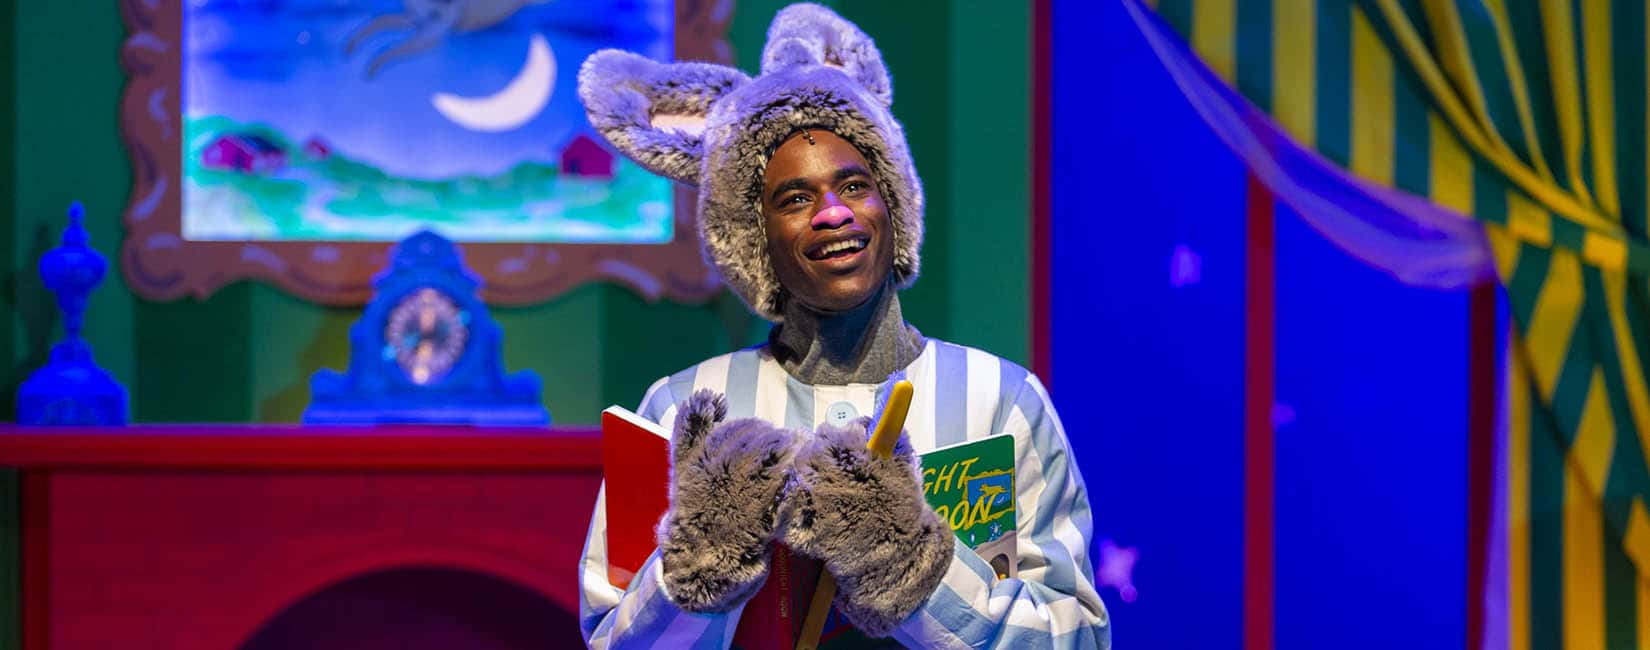 Rakeem Lawrence as Bunny in GOODNIGHT MOON Photo by Adams VisCom